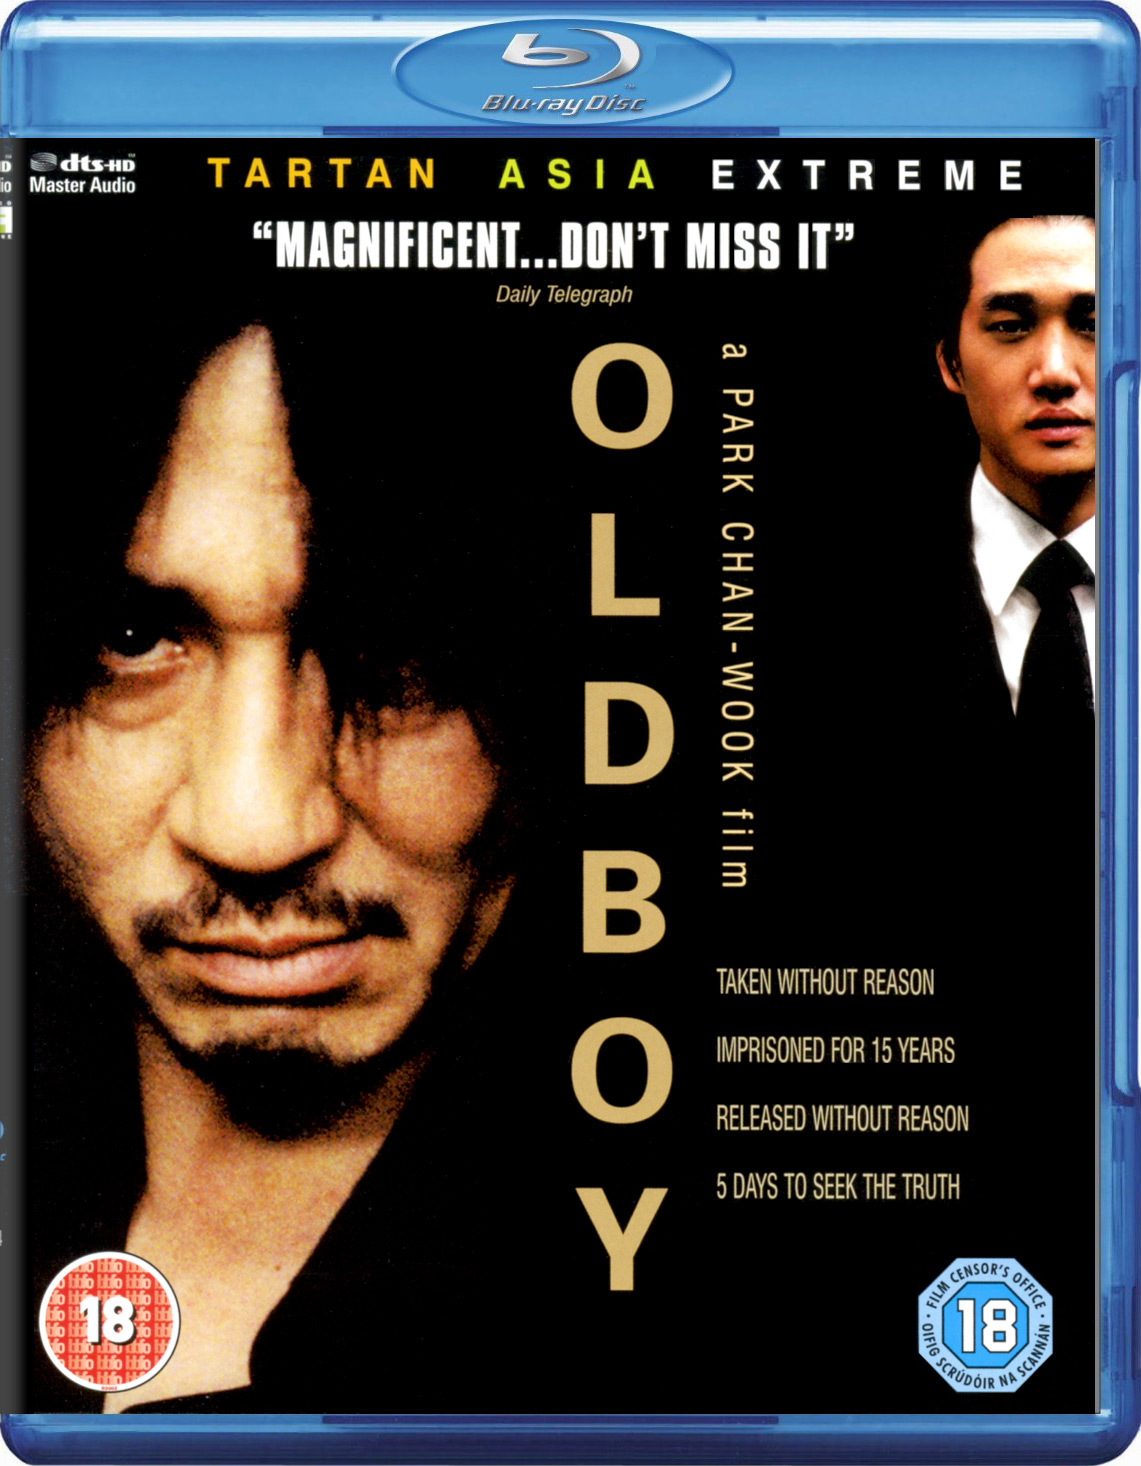 Oldboy (2003) 720p BrRip x264 Triple audio (English+Hindi+Korean